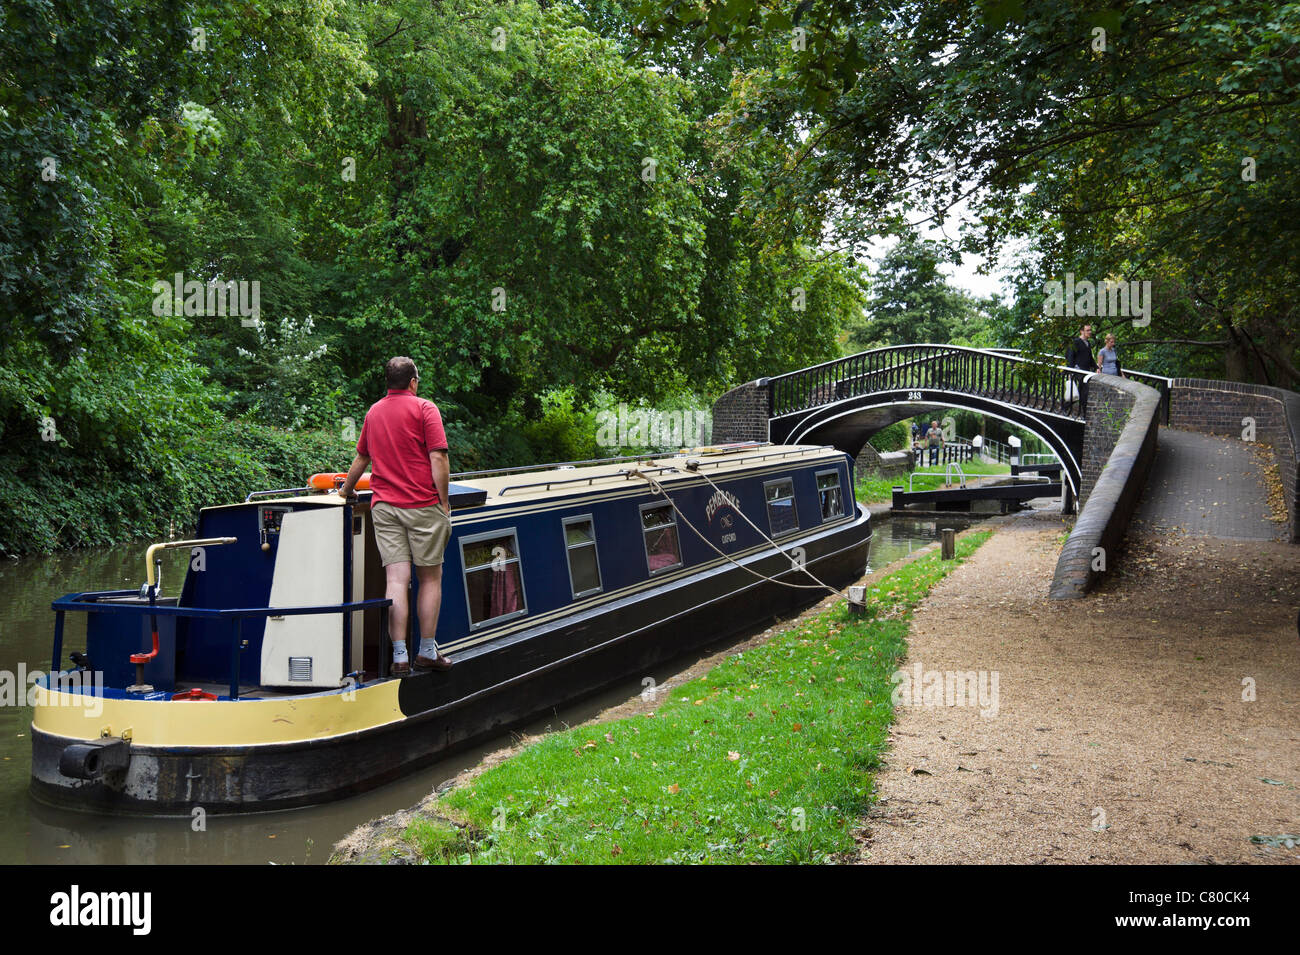 Narrowboat entering the lock gates on the Oxford Canal near Jericho, Oxford, Oxfordshire, England, UK - Stock Image